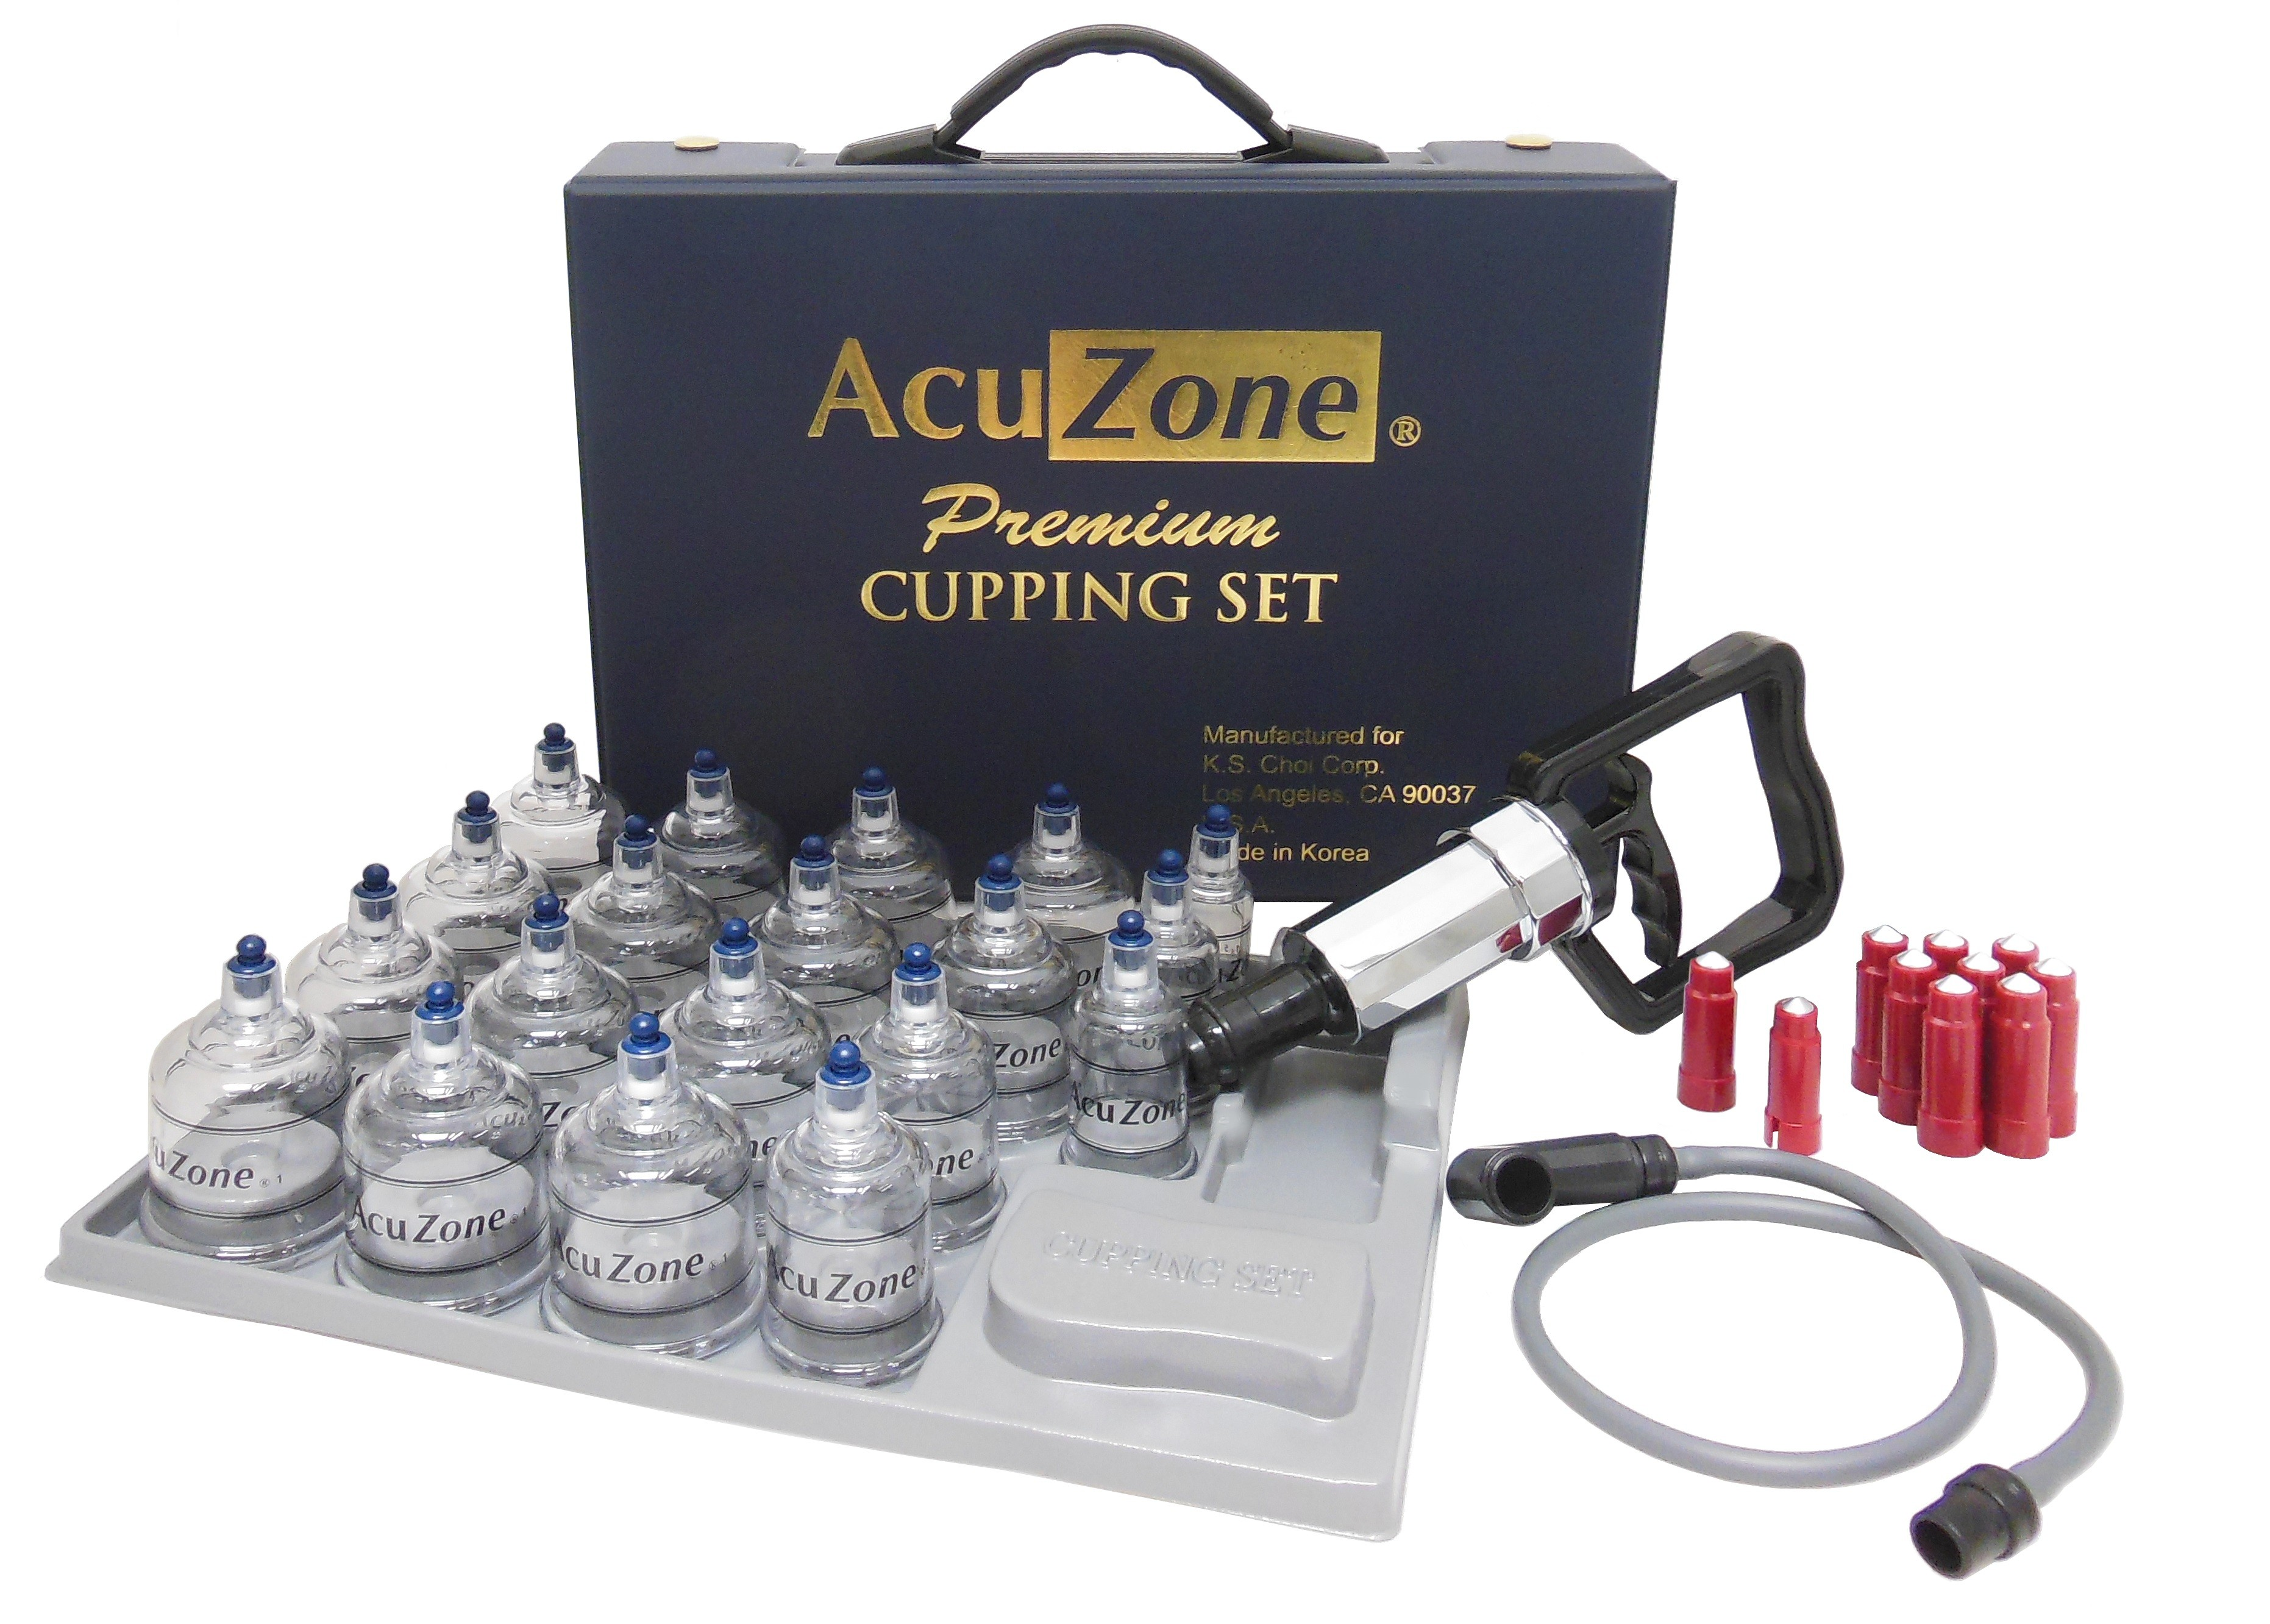 Premium Quality Cupping Set W 19 Cups Includes The